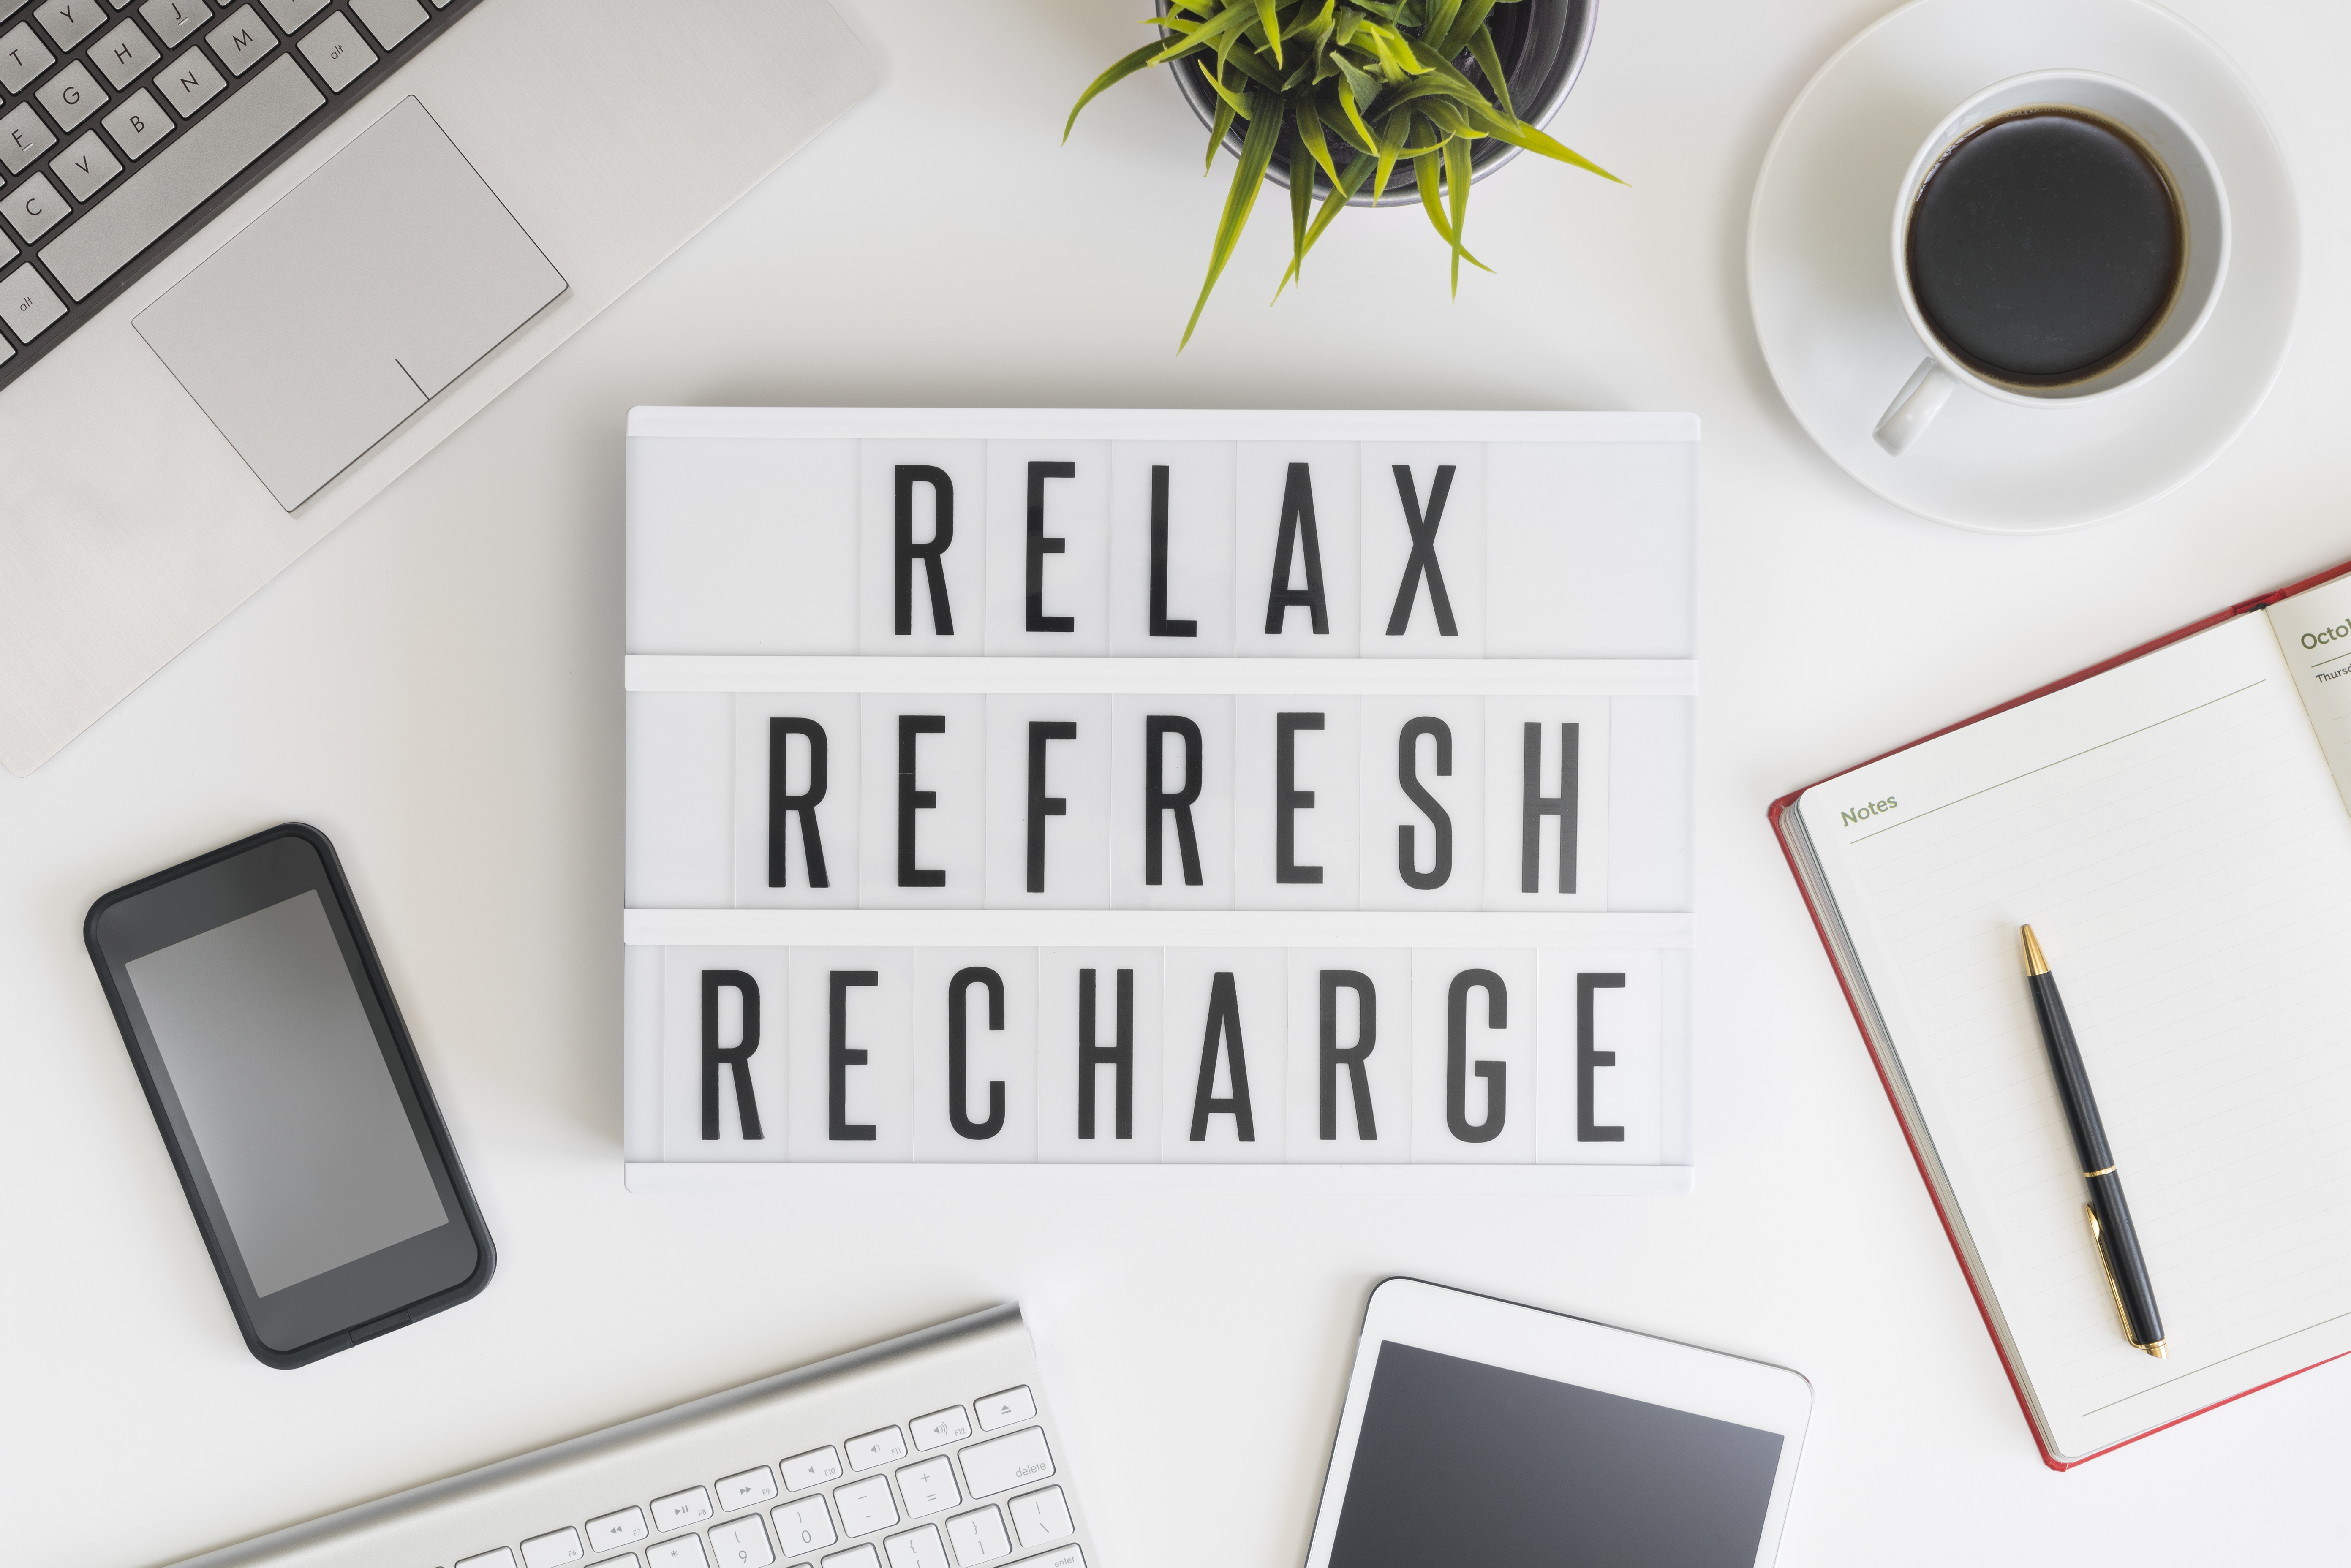 Take Breaks to Relax Refresh and Recharge